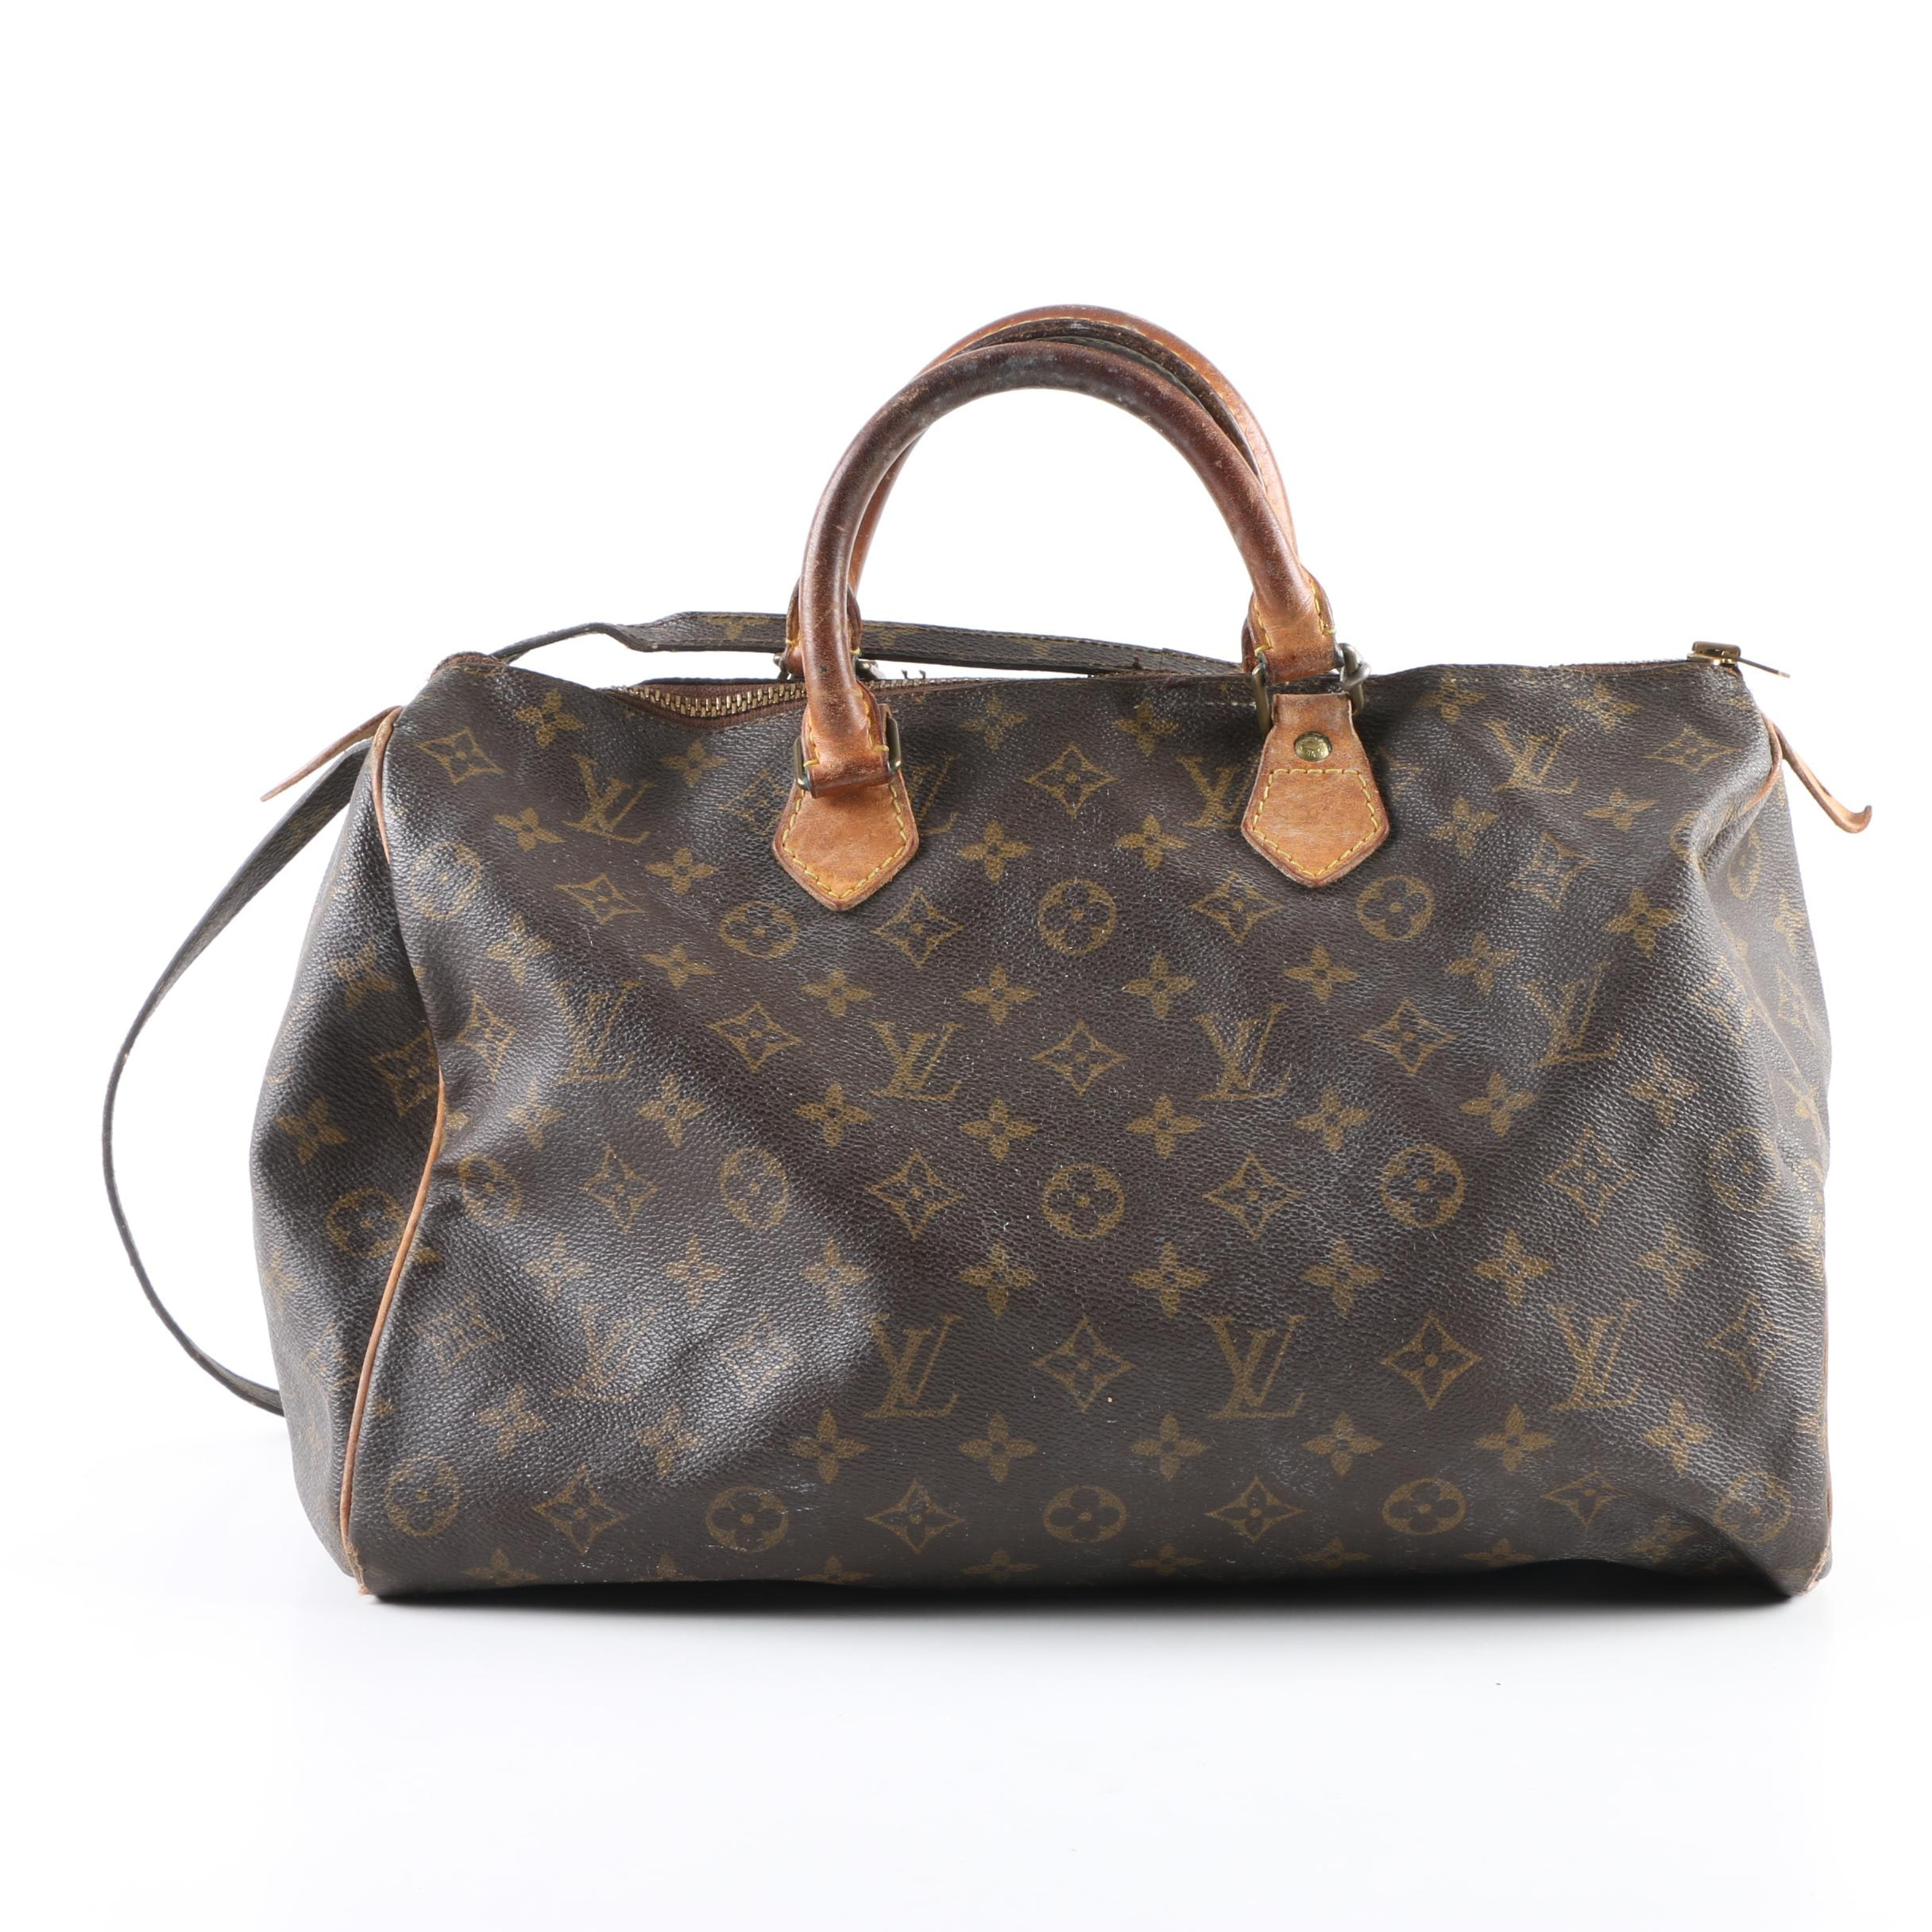 1980s Vintage Louis Vuitton Speedy Monogram Coated and Leather Canvas Duffel